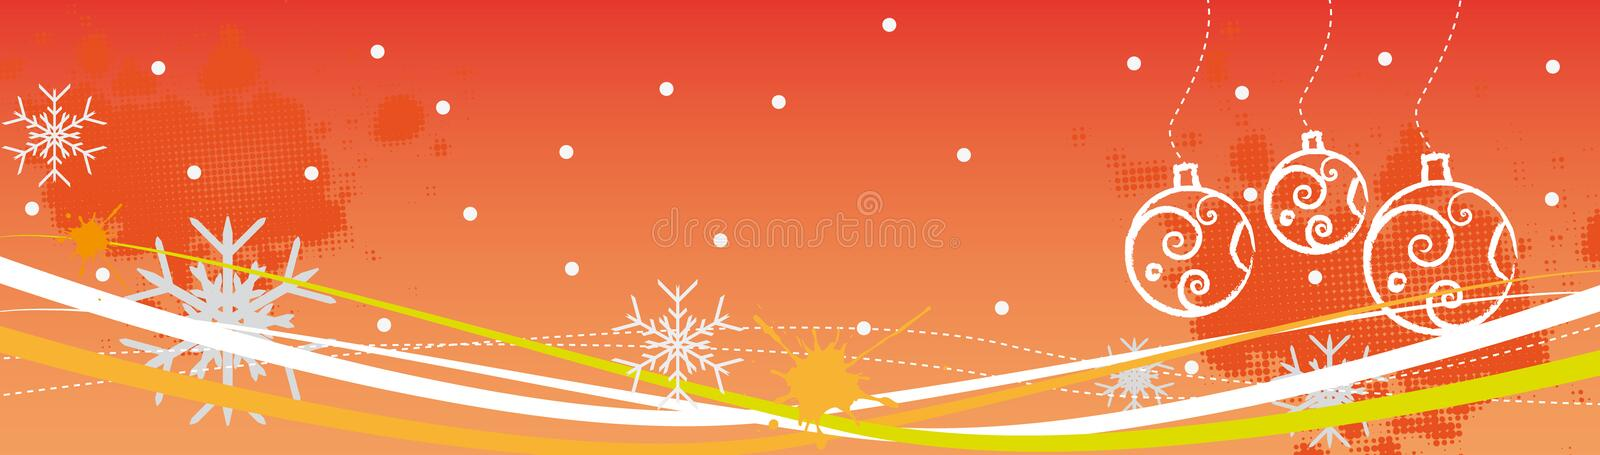 Download Christmas backgrounds stock illustration. Image of ornament - 12040637